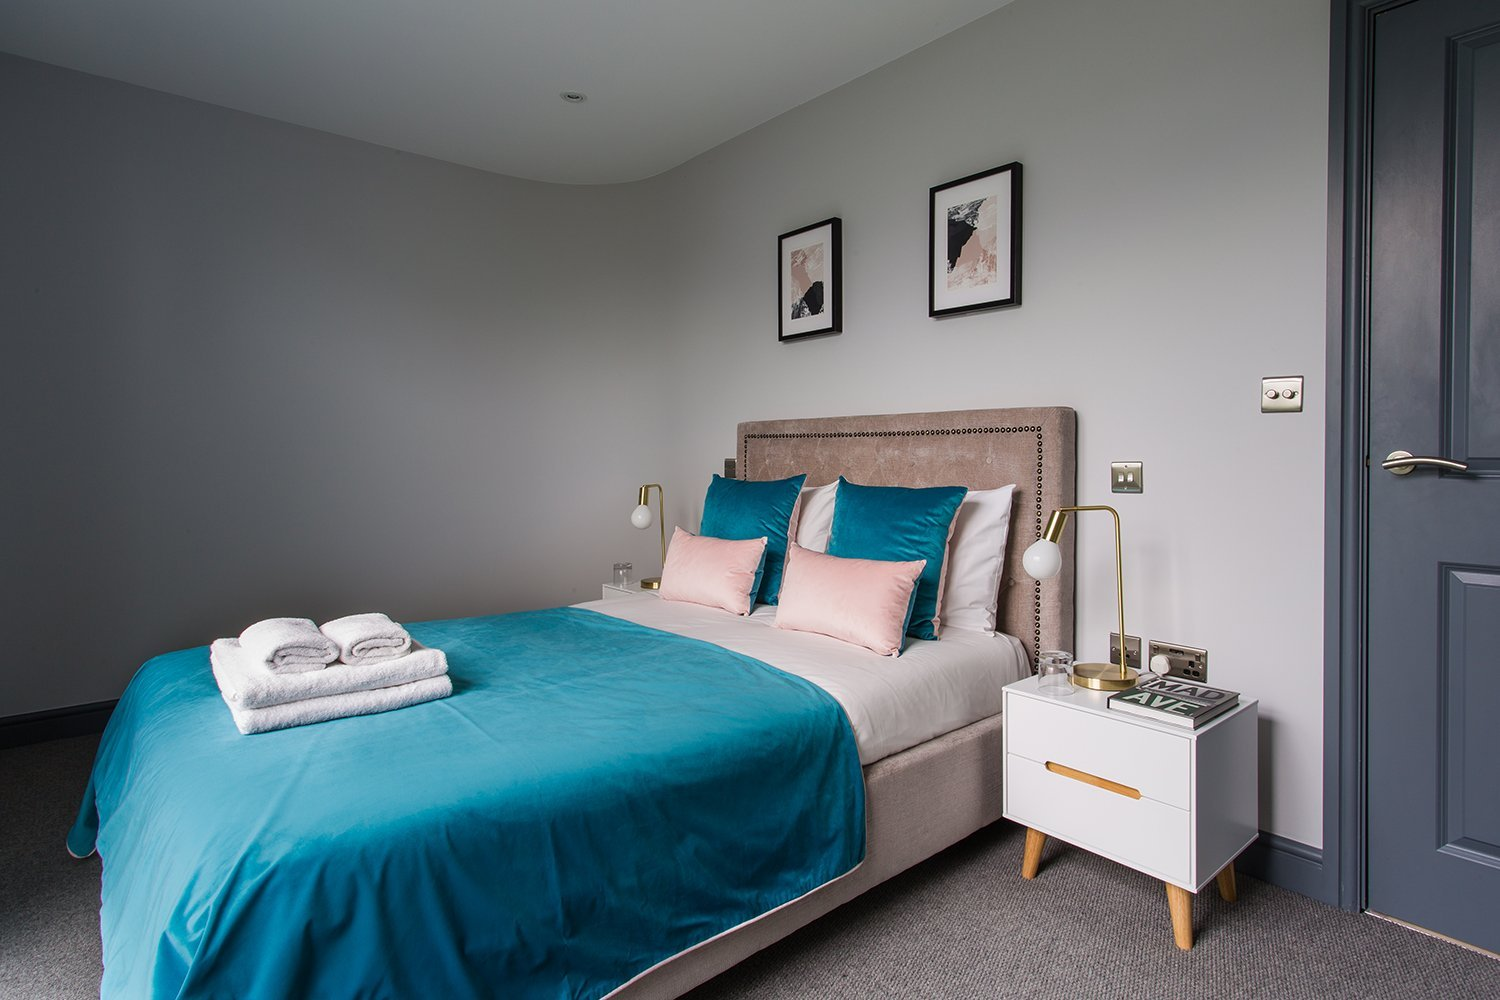 Modern-Serviced-Apartments-Farnborough---Luxury-Farnborough-Apartments---Don't-delay,-book-with-Urban-Stay-today!-Free-Wi-Fi---Free-Parking